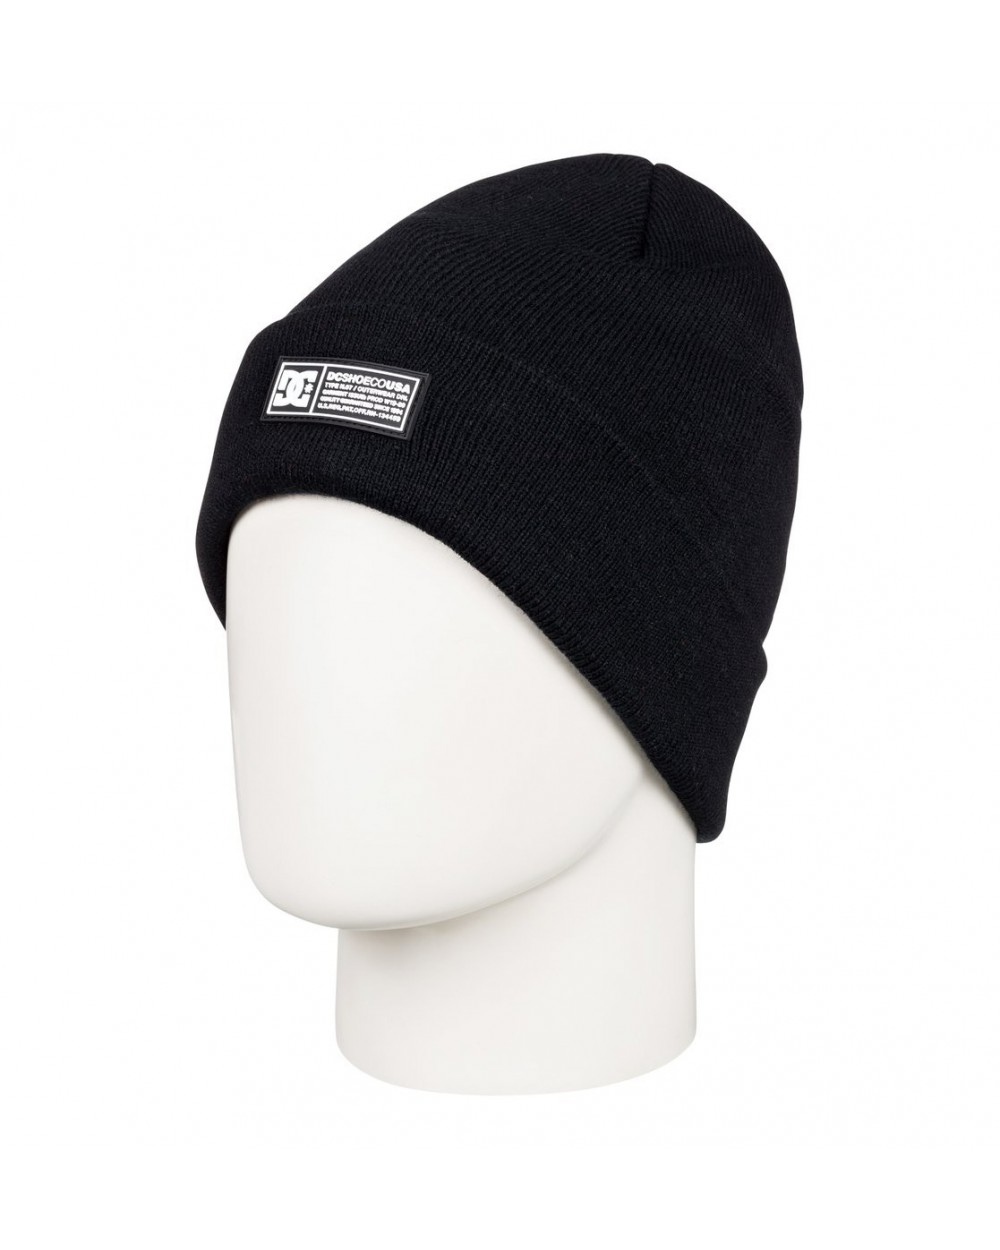 Dc Label Cuff Beanie - Black